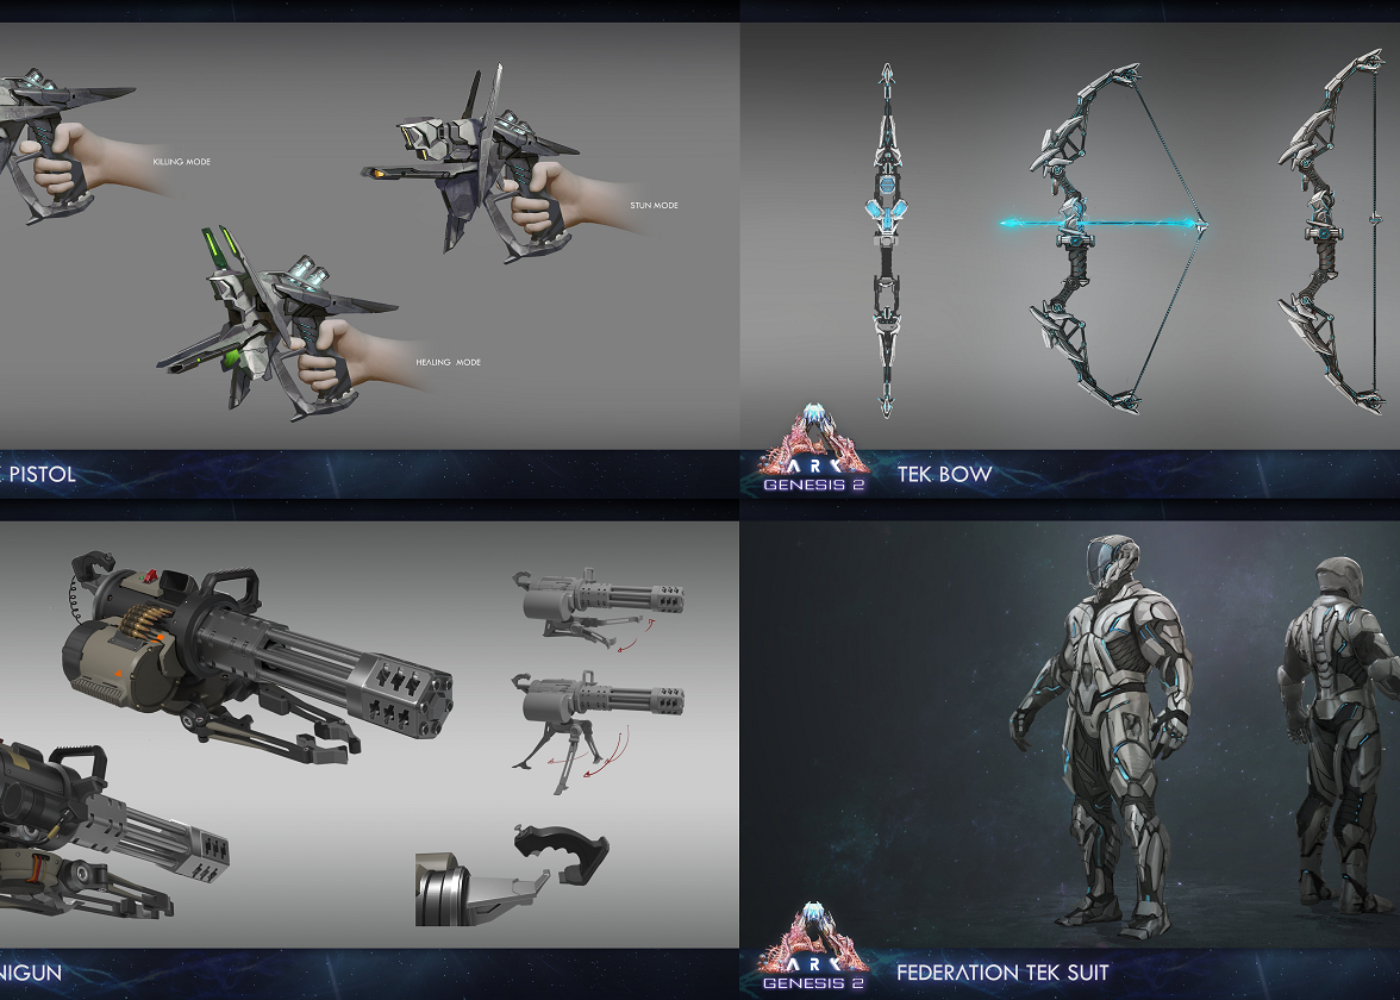 Wepons and equipment